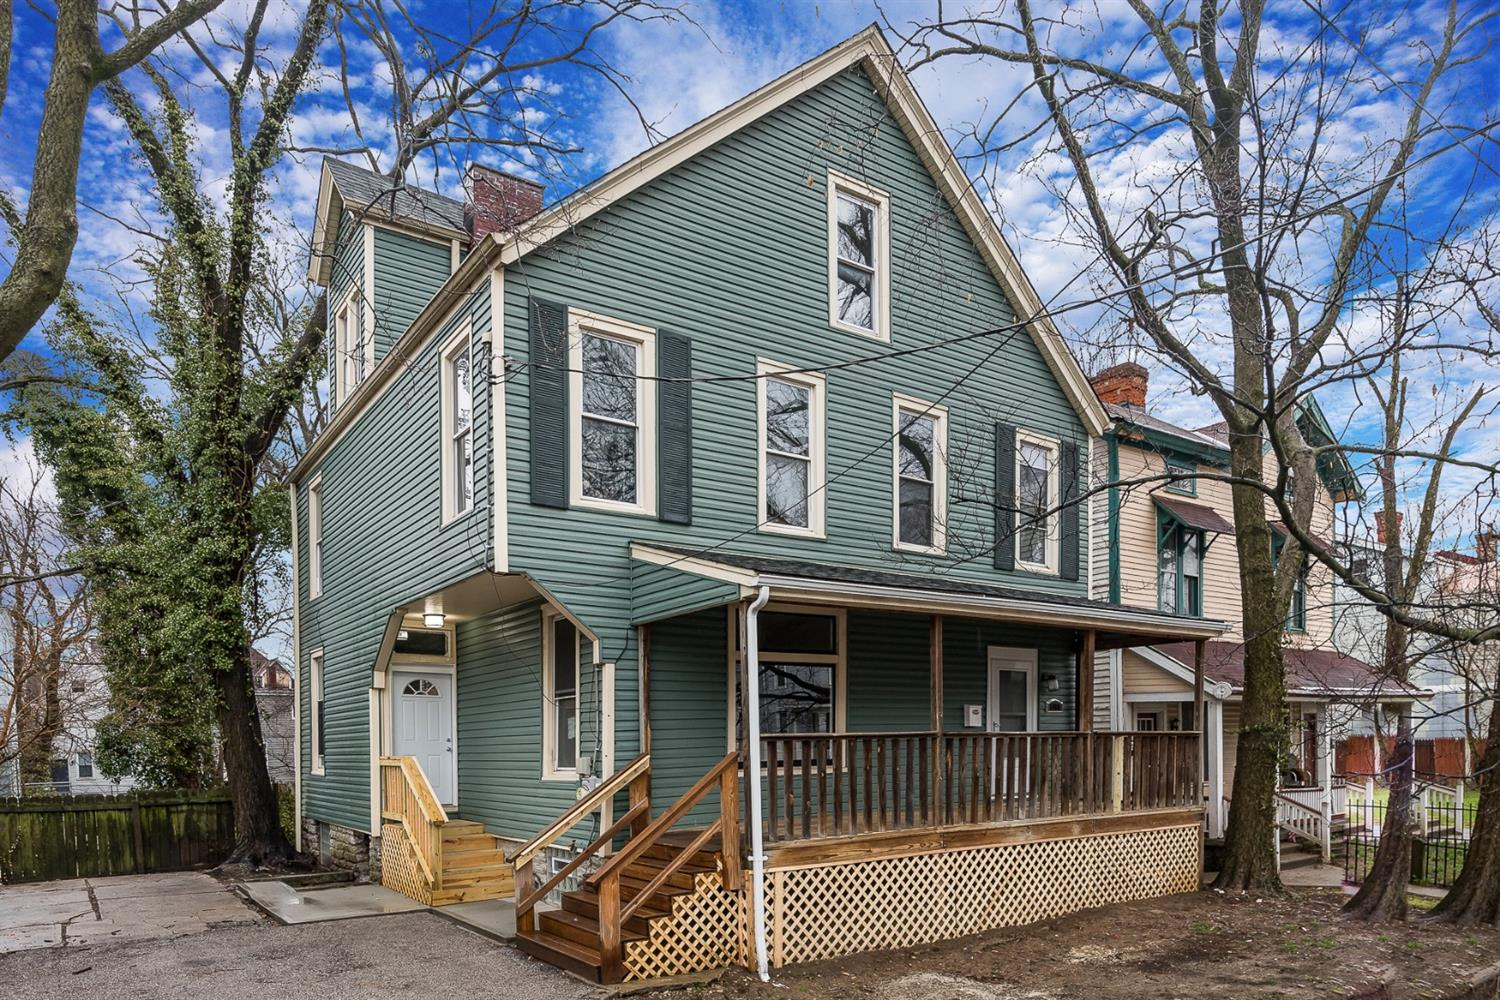 Now is your chance to take part of the excitement in Evanston/E. Walnut Hills! Stunning renovation only one block from bustling Woodburn Ave.! Enjoy monthly Walk on Woodburn events, microbrewery, cheese shop, cafes, retail, and dining... all down the street. Inviting space full of character and perfect for year-round entertainment!